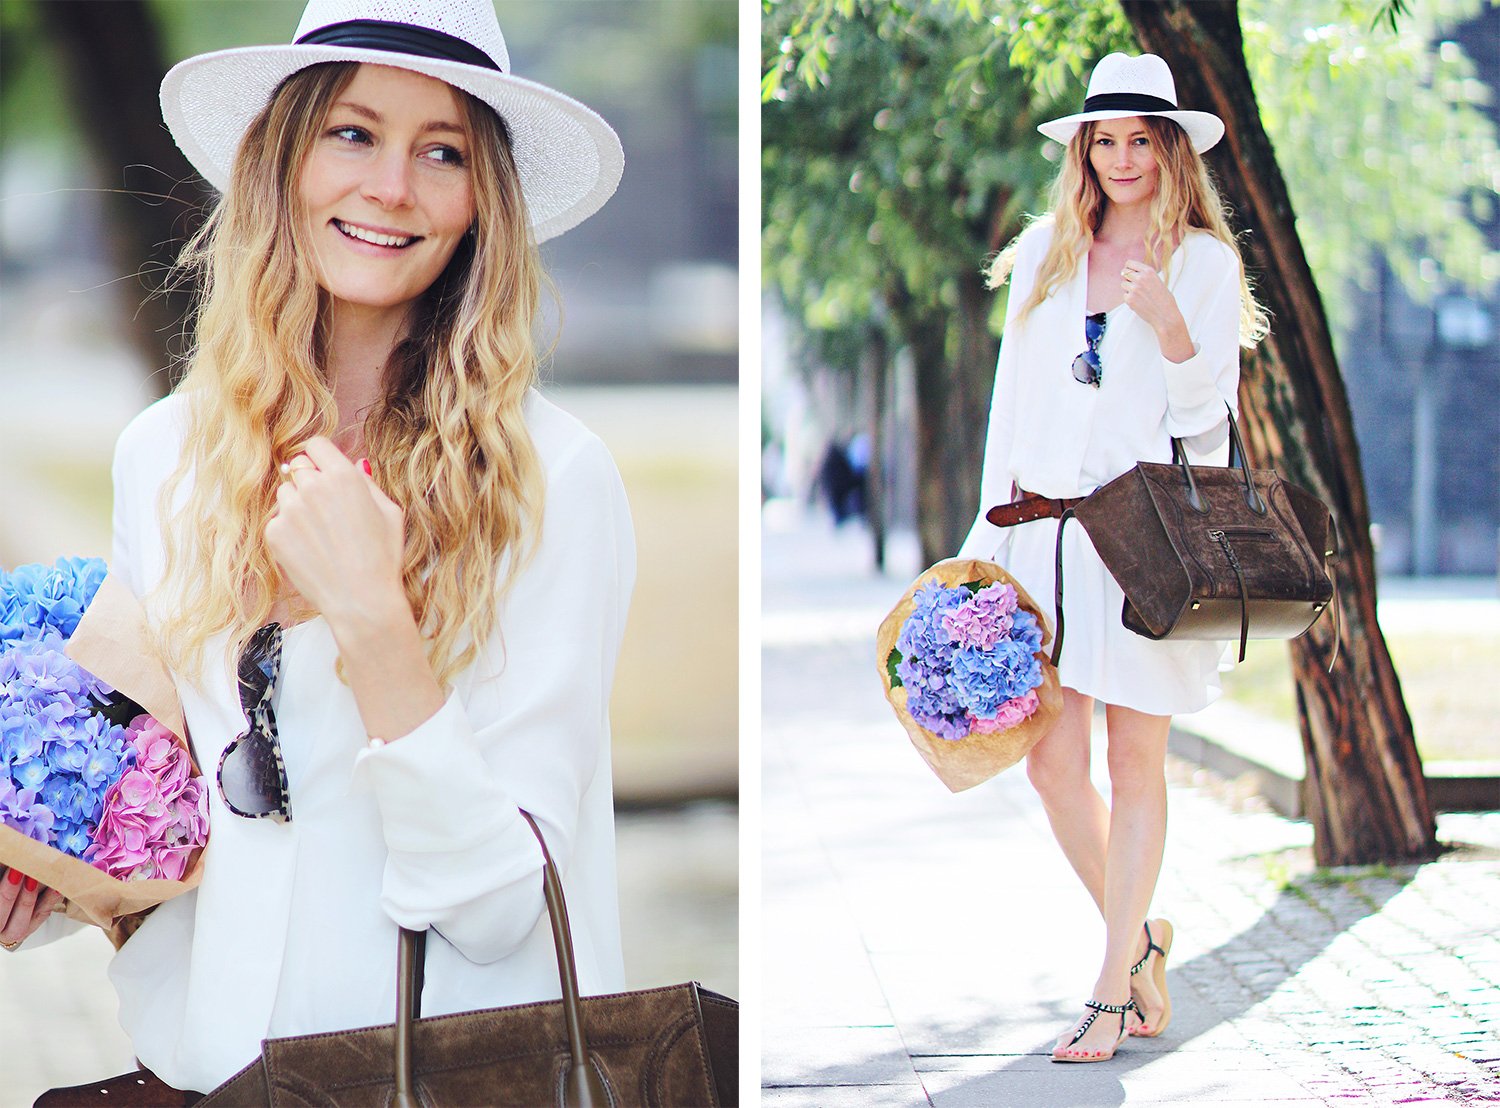 modeblog-outfit@2x